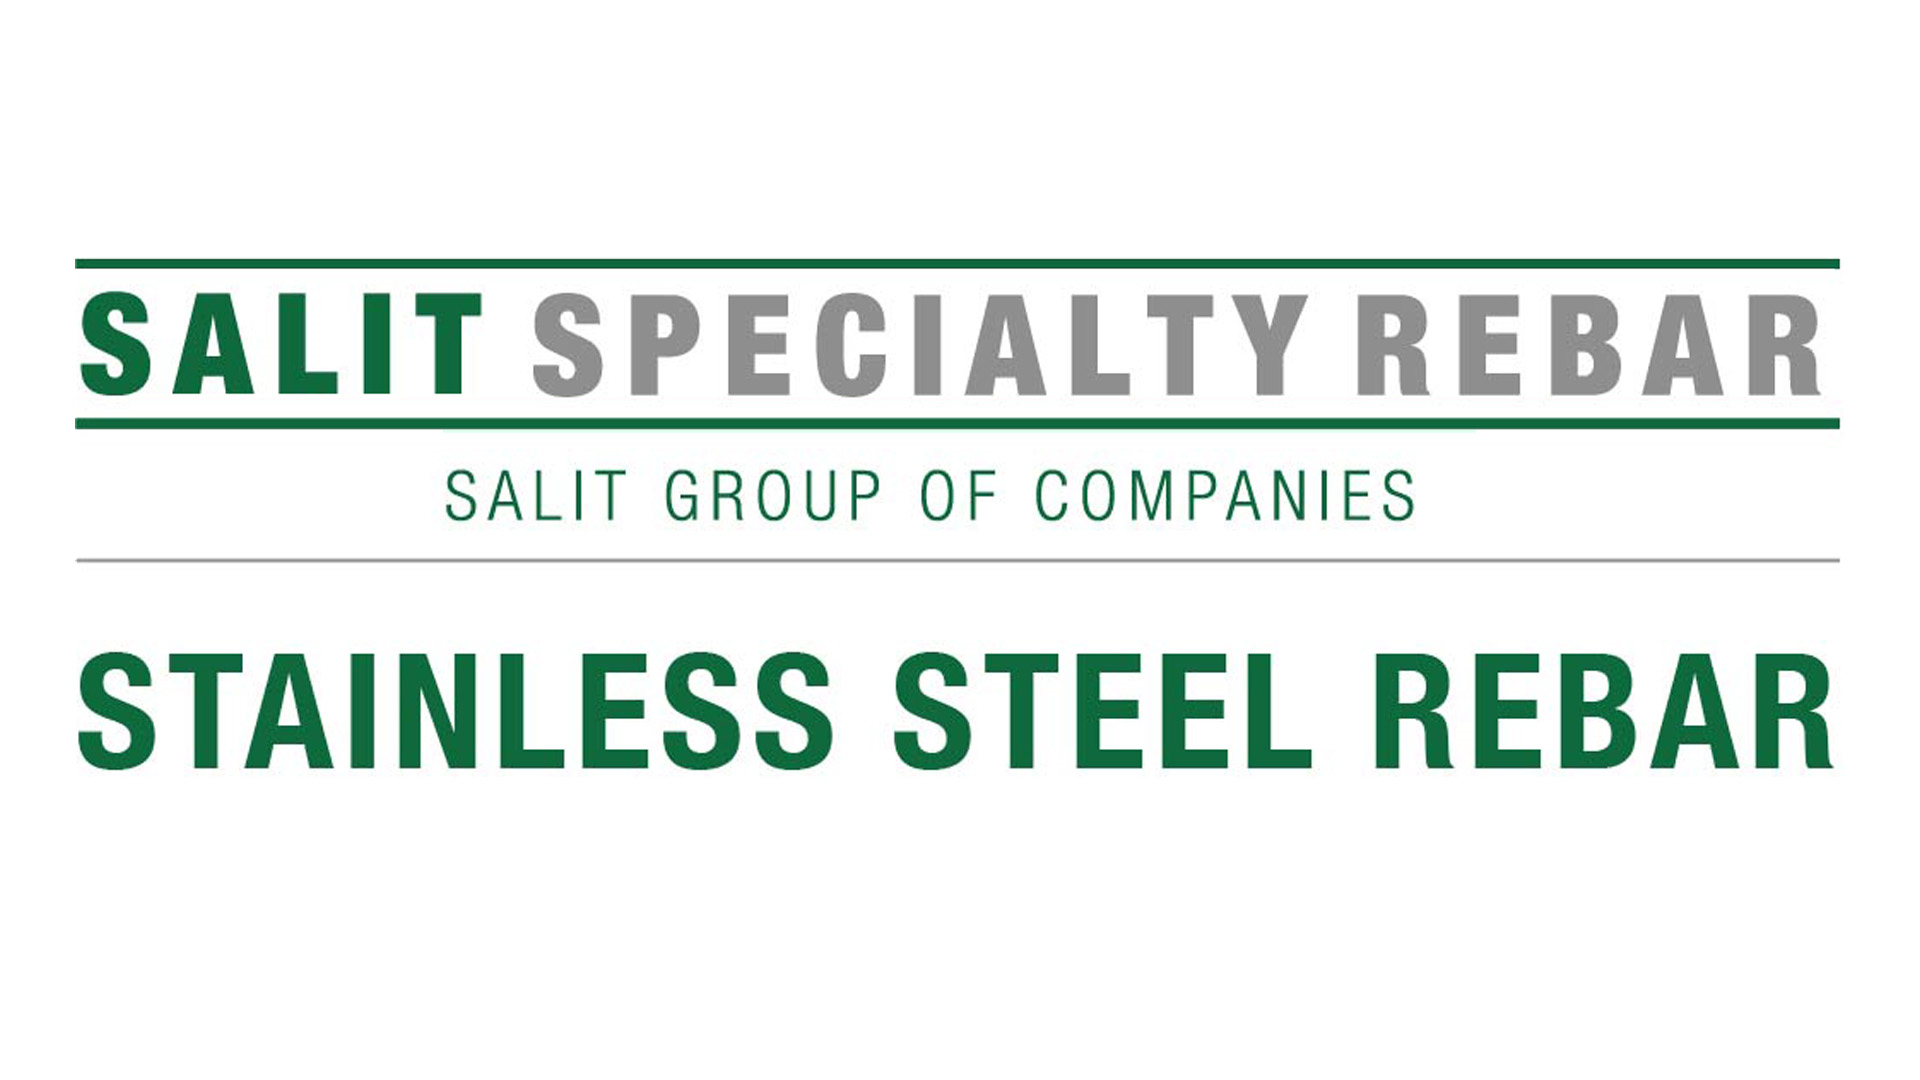 Salit Specialty Rebar, Division of Salit Steel